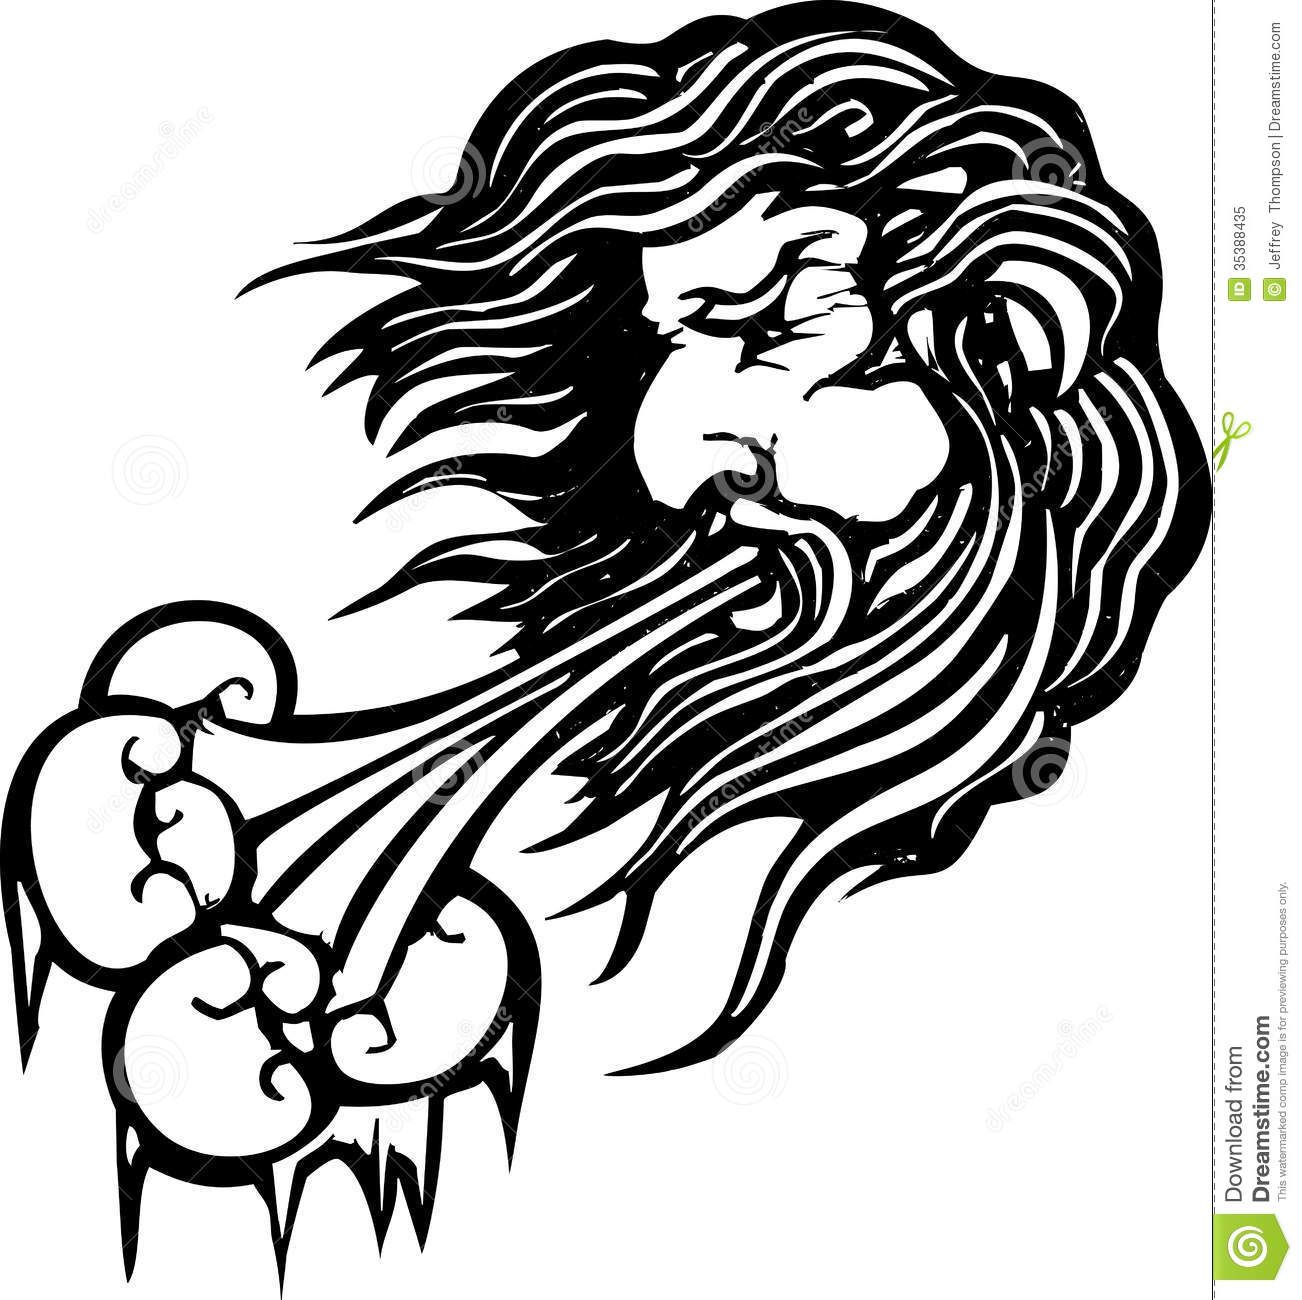 North tats blowing sun. Air clipart strong wind